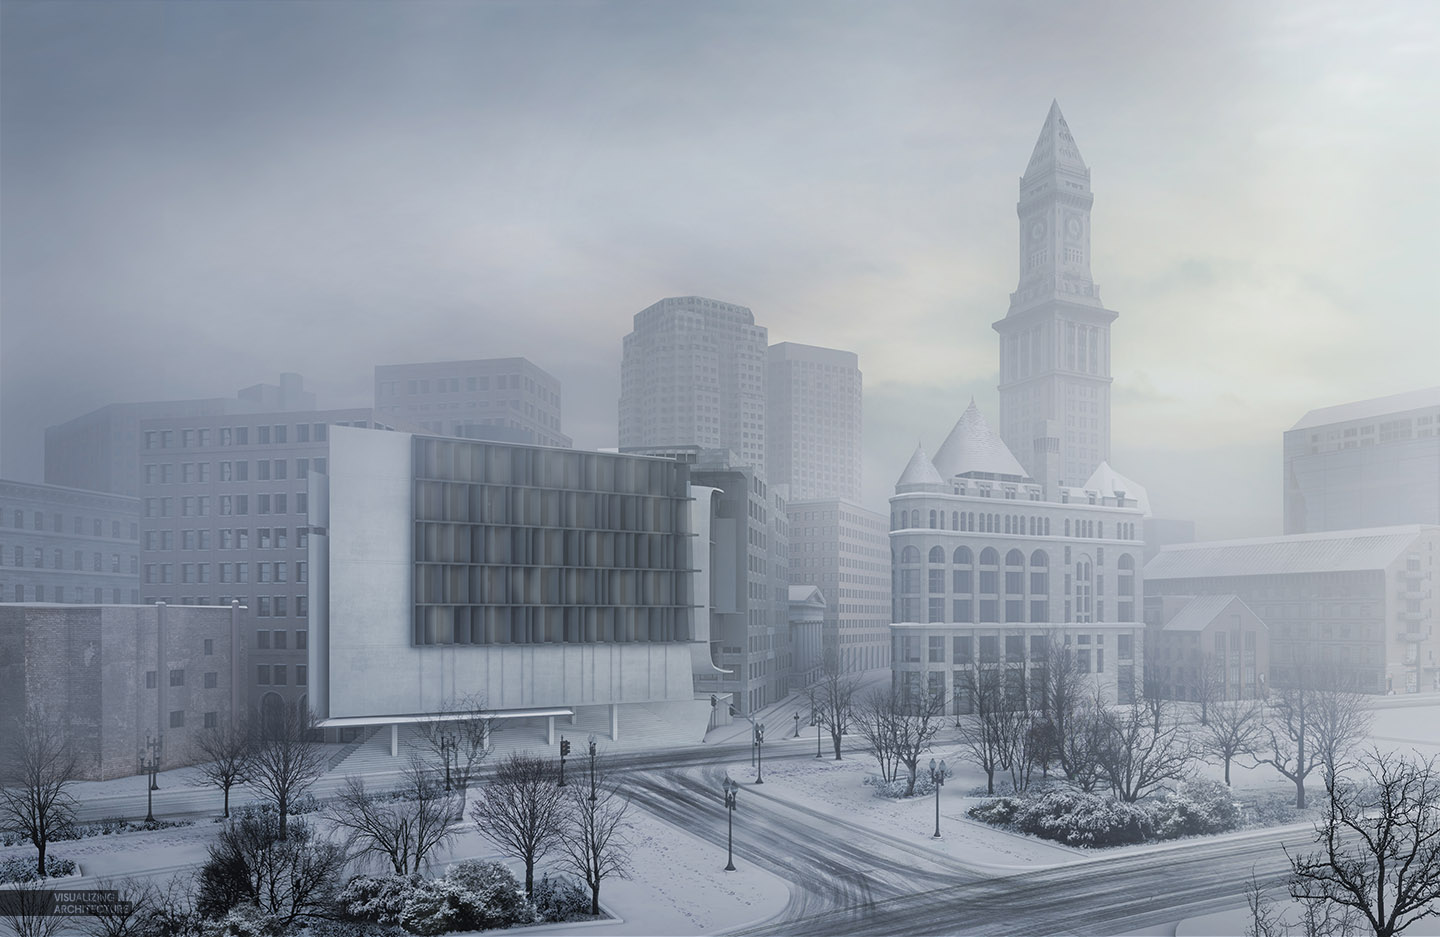 bcc_winter_5_fog_color